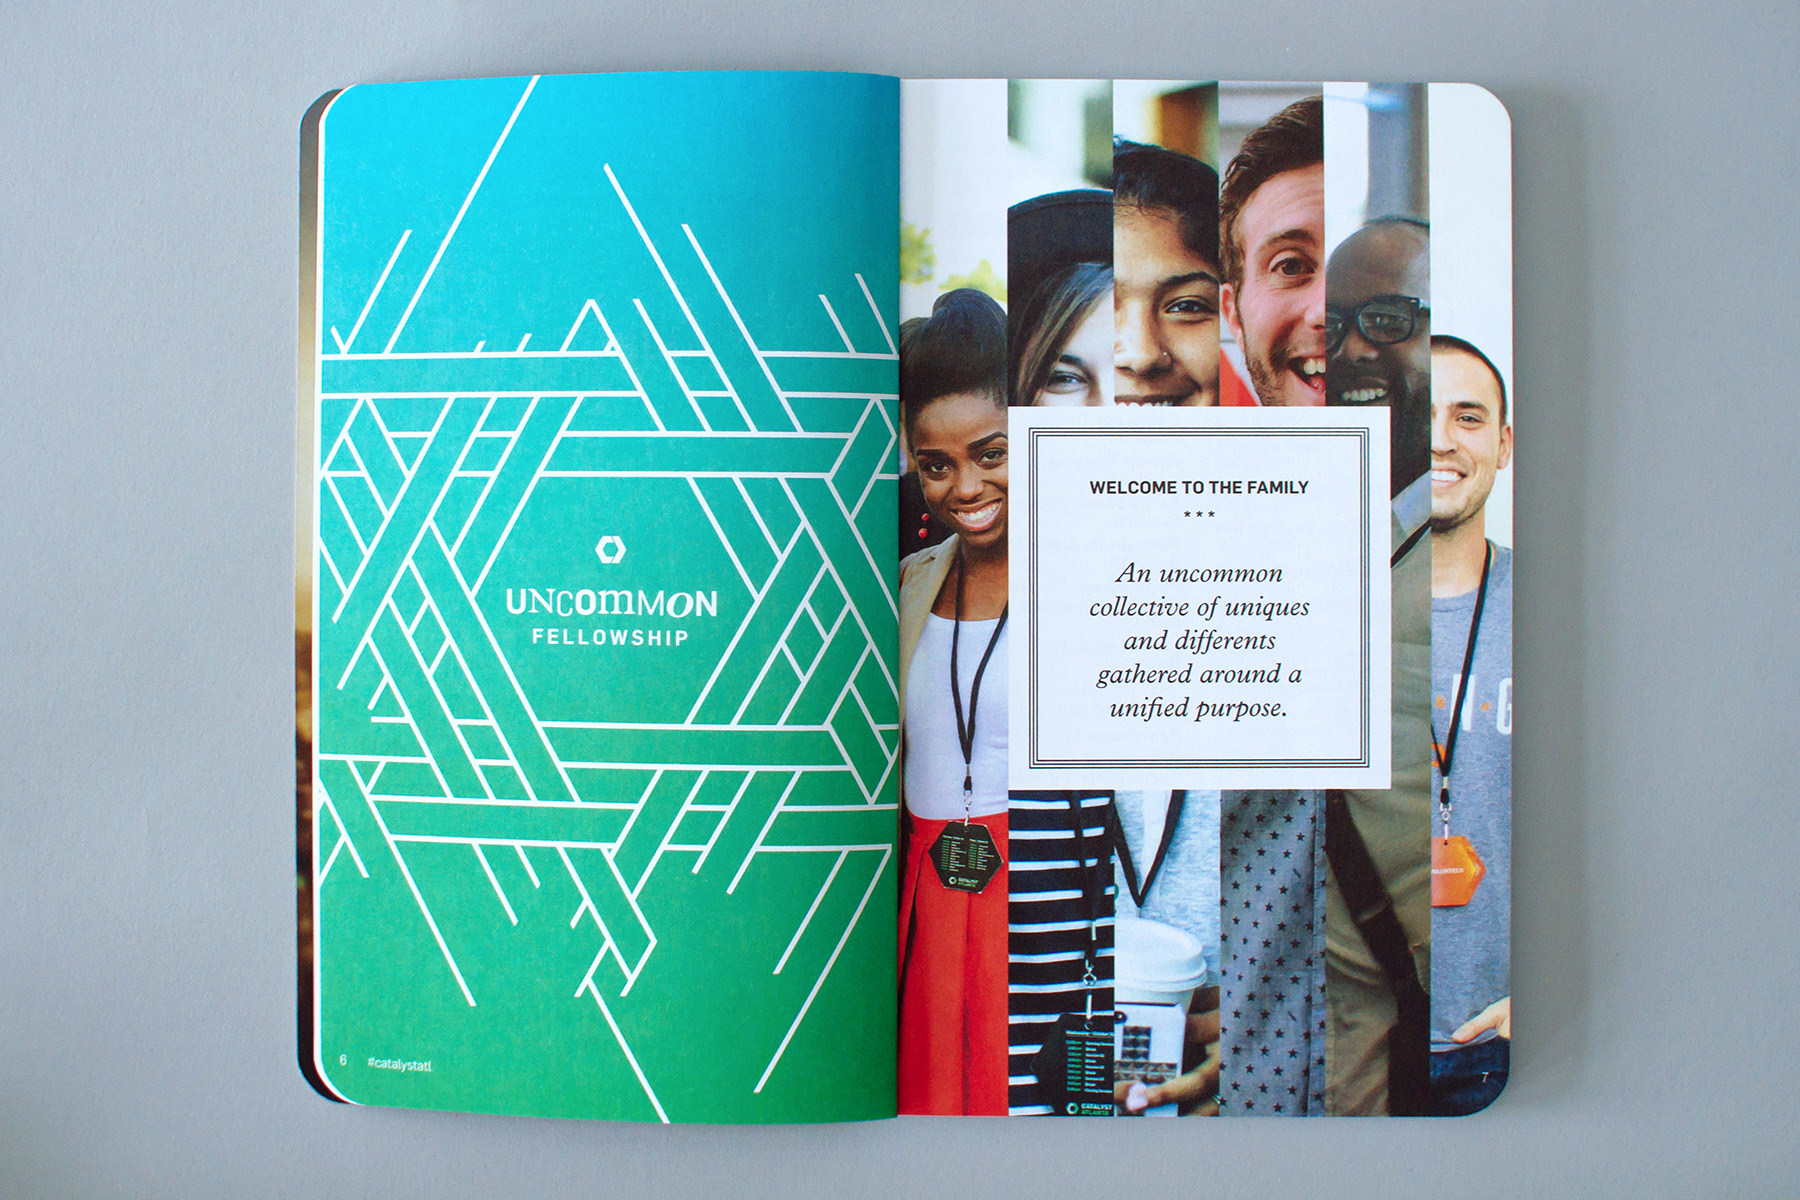 Custom logo pattern of Catalyst icon for Uncommon Fellowship reveals the event branding in this editorial and layout spread design with columns of photos of diverse people and a message of welcome to the family.